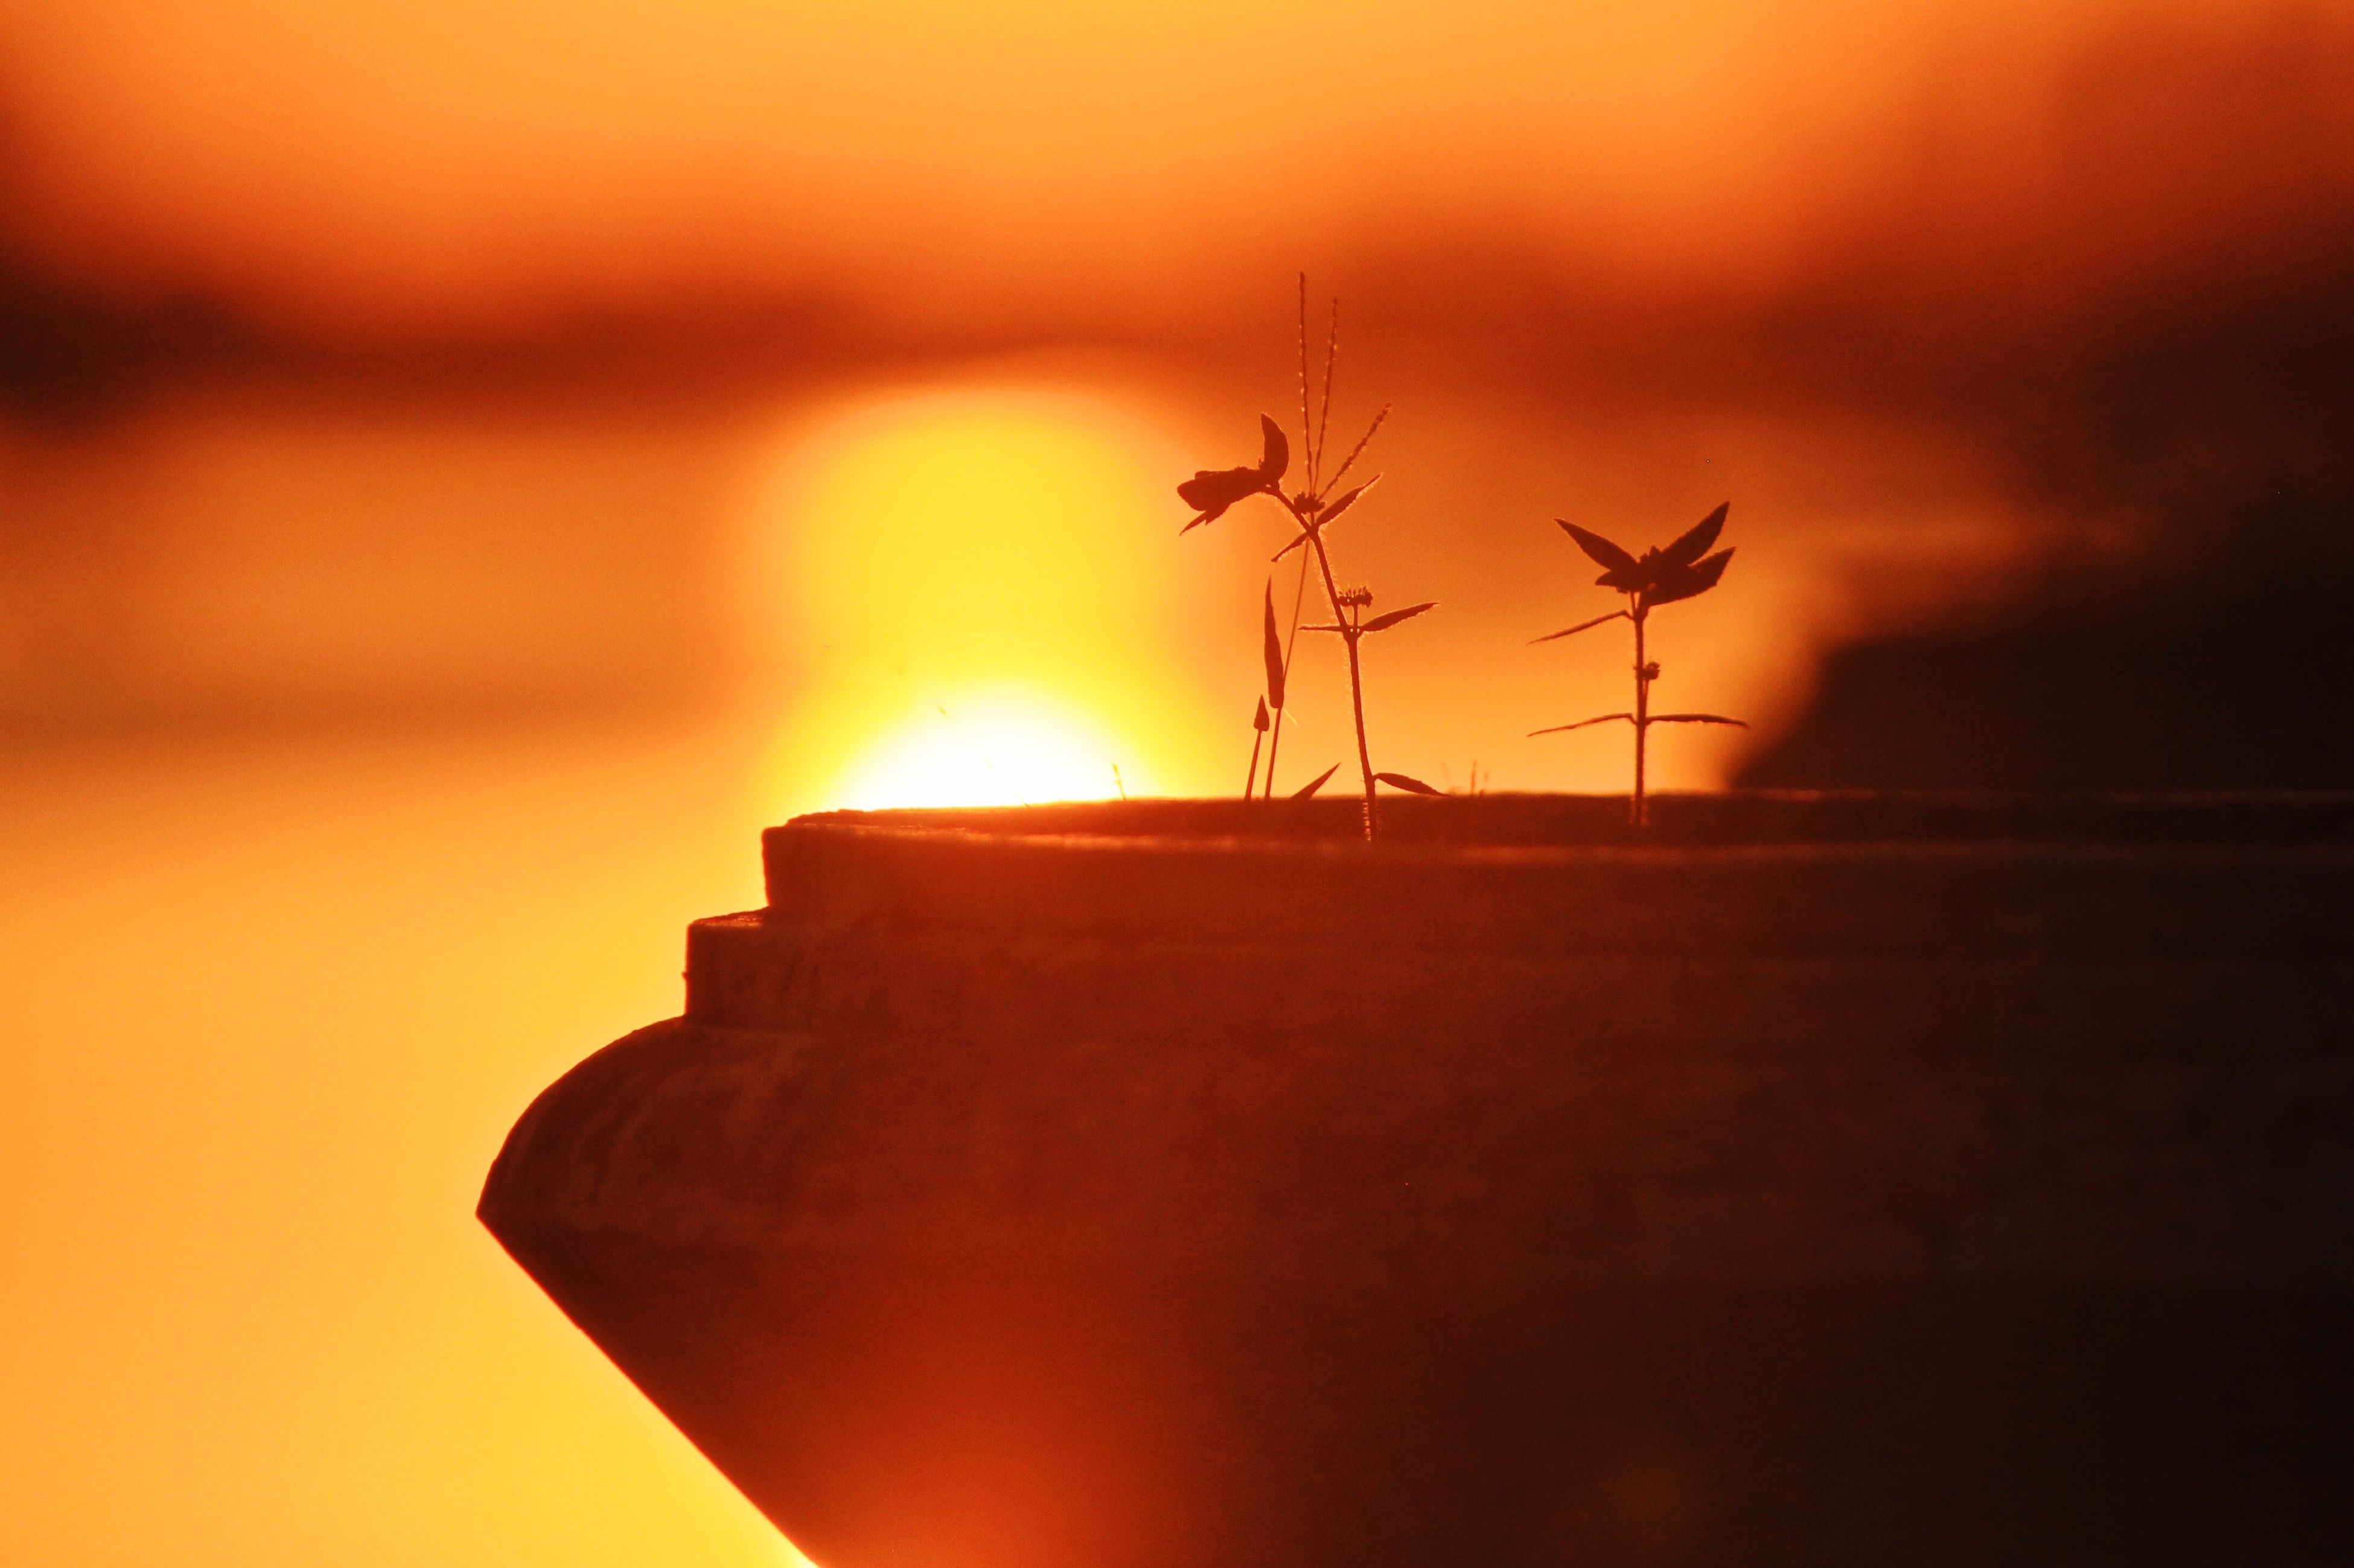 sunset, orange color, silhouette, sun, focus on foreground, sky, nature, tranquility, tranquil scene, beauty in nature, scenics, no people, outdoors, sunlight, close-up, dusk, idyllic, dramatic sky, cloud - sky, selective focus